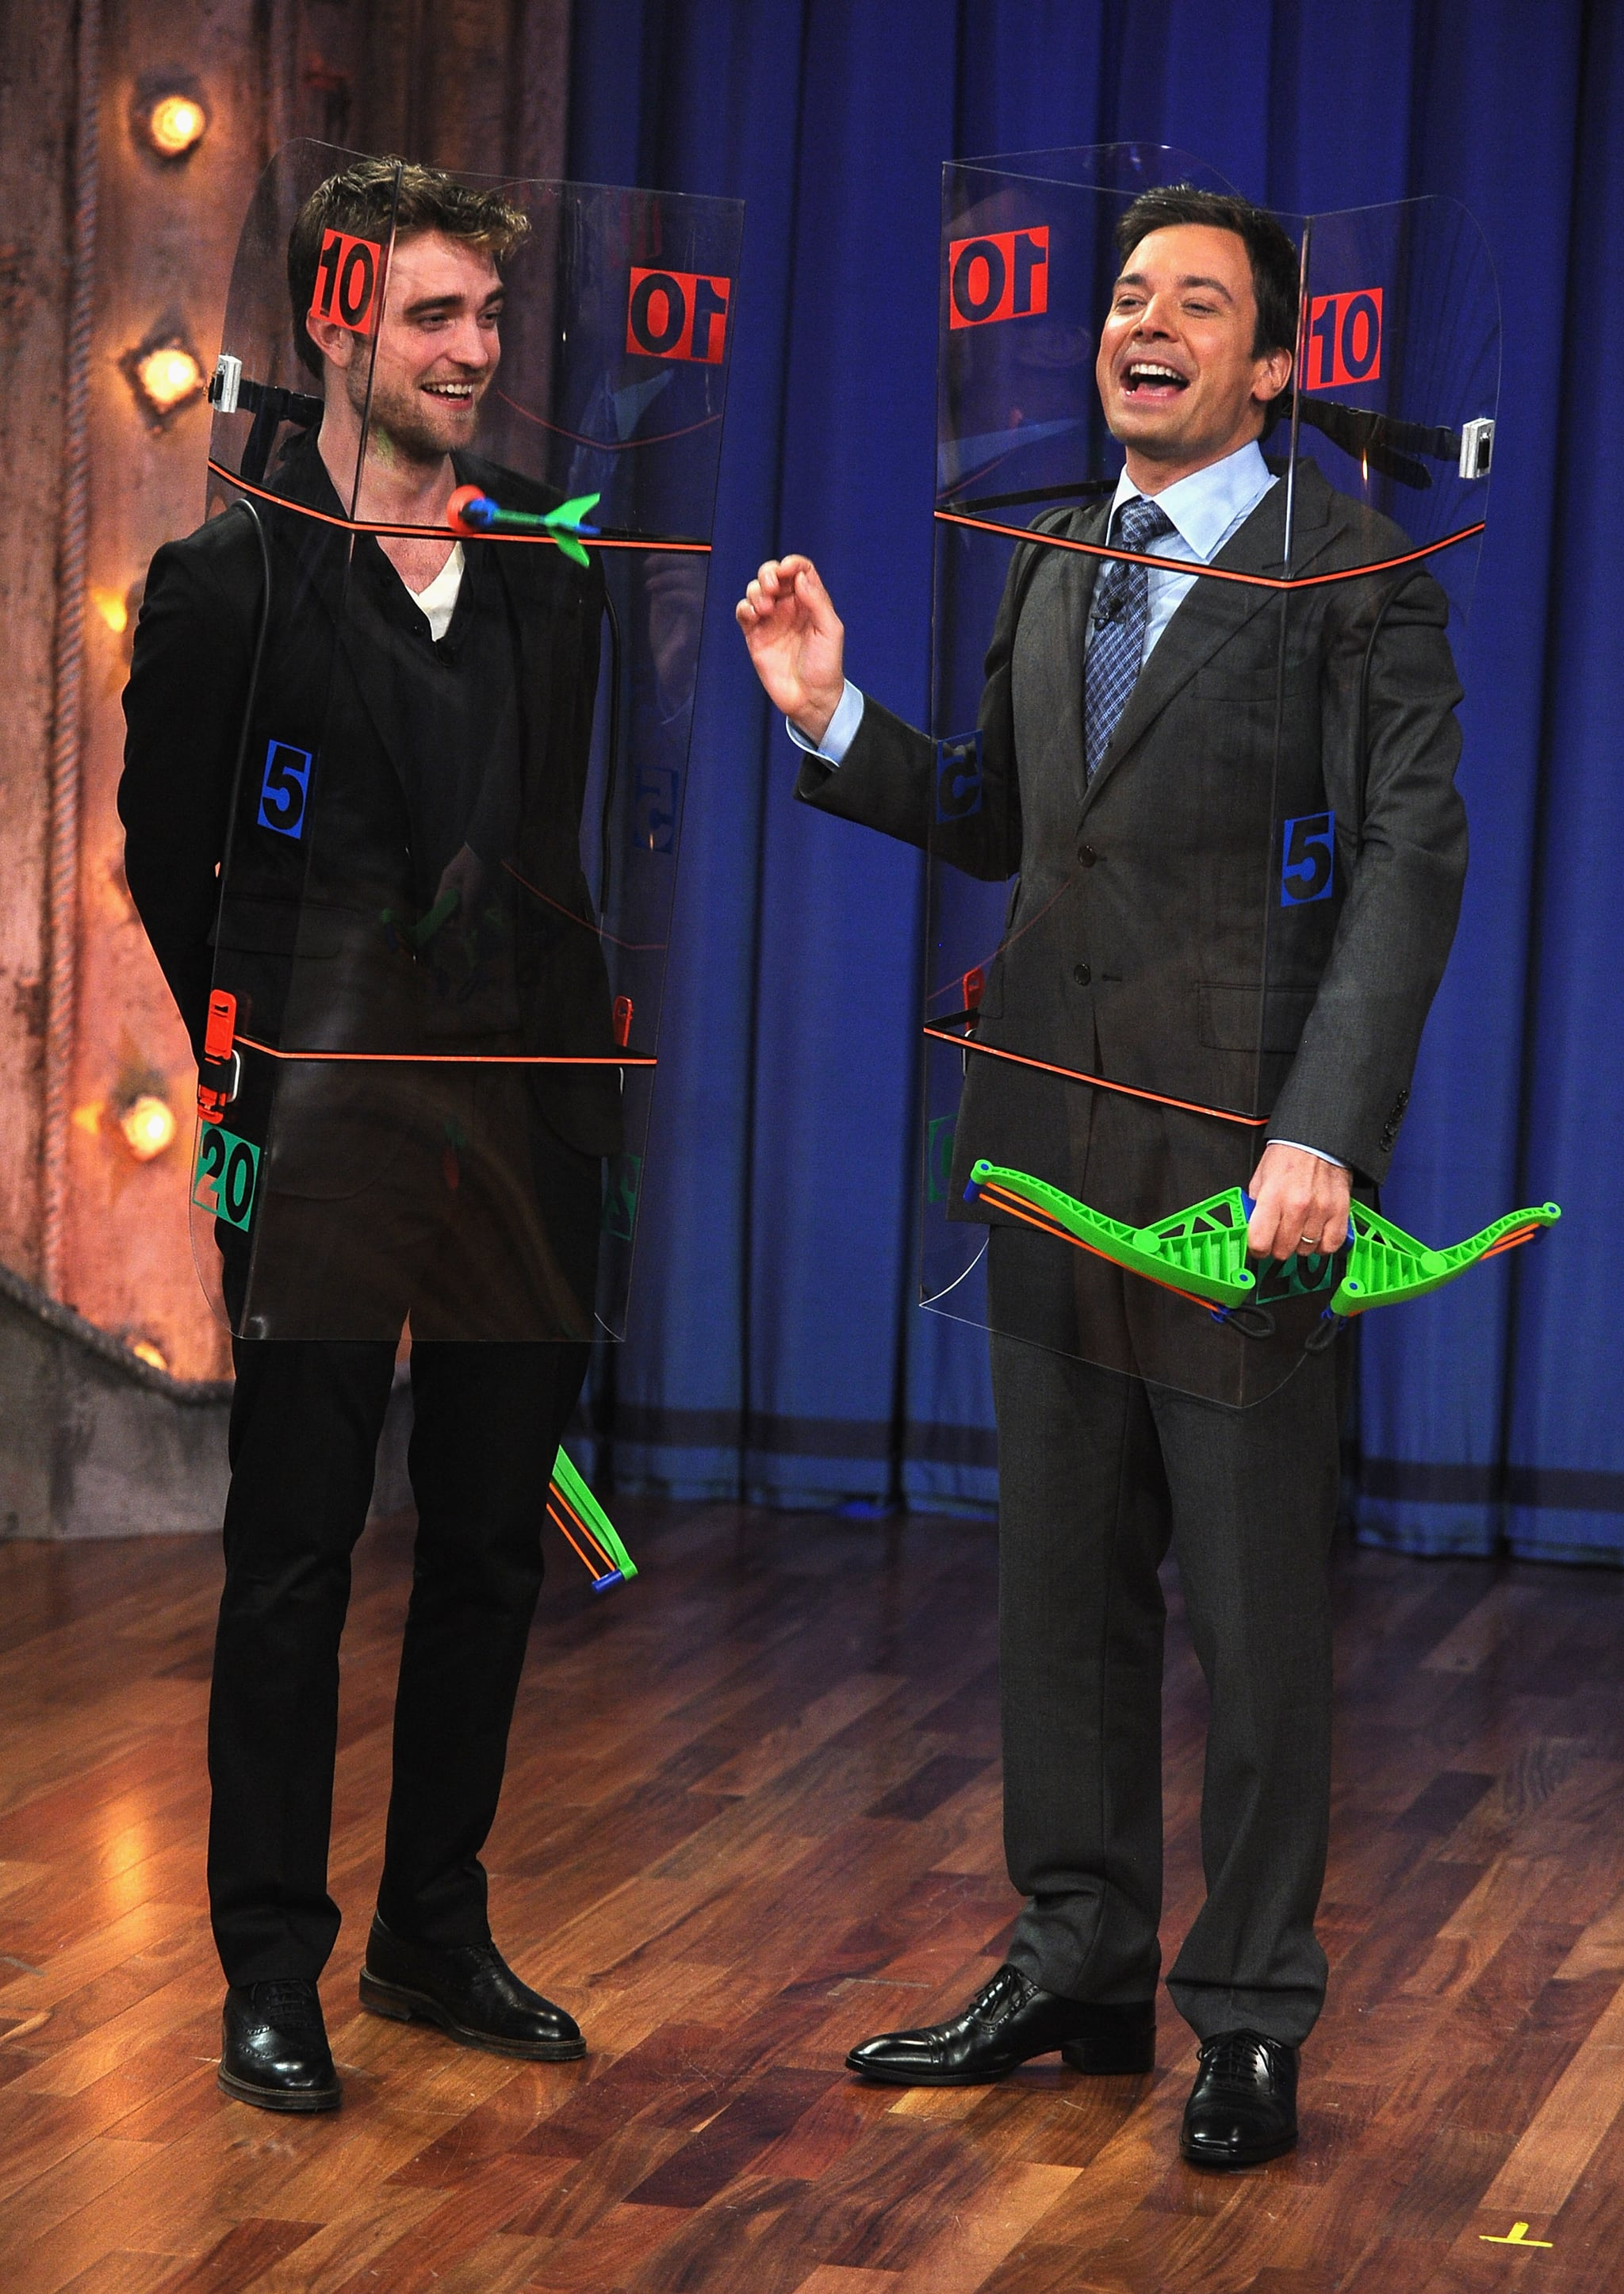 Jimmy and Rob wore silly outfits.